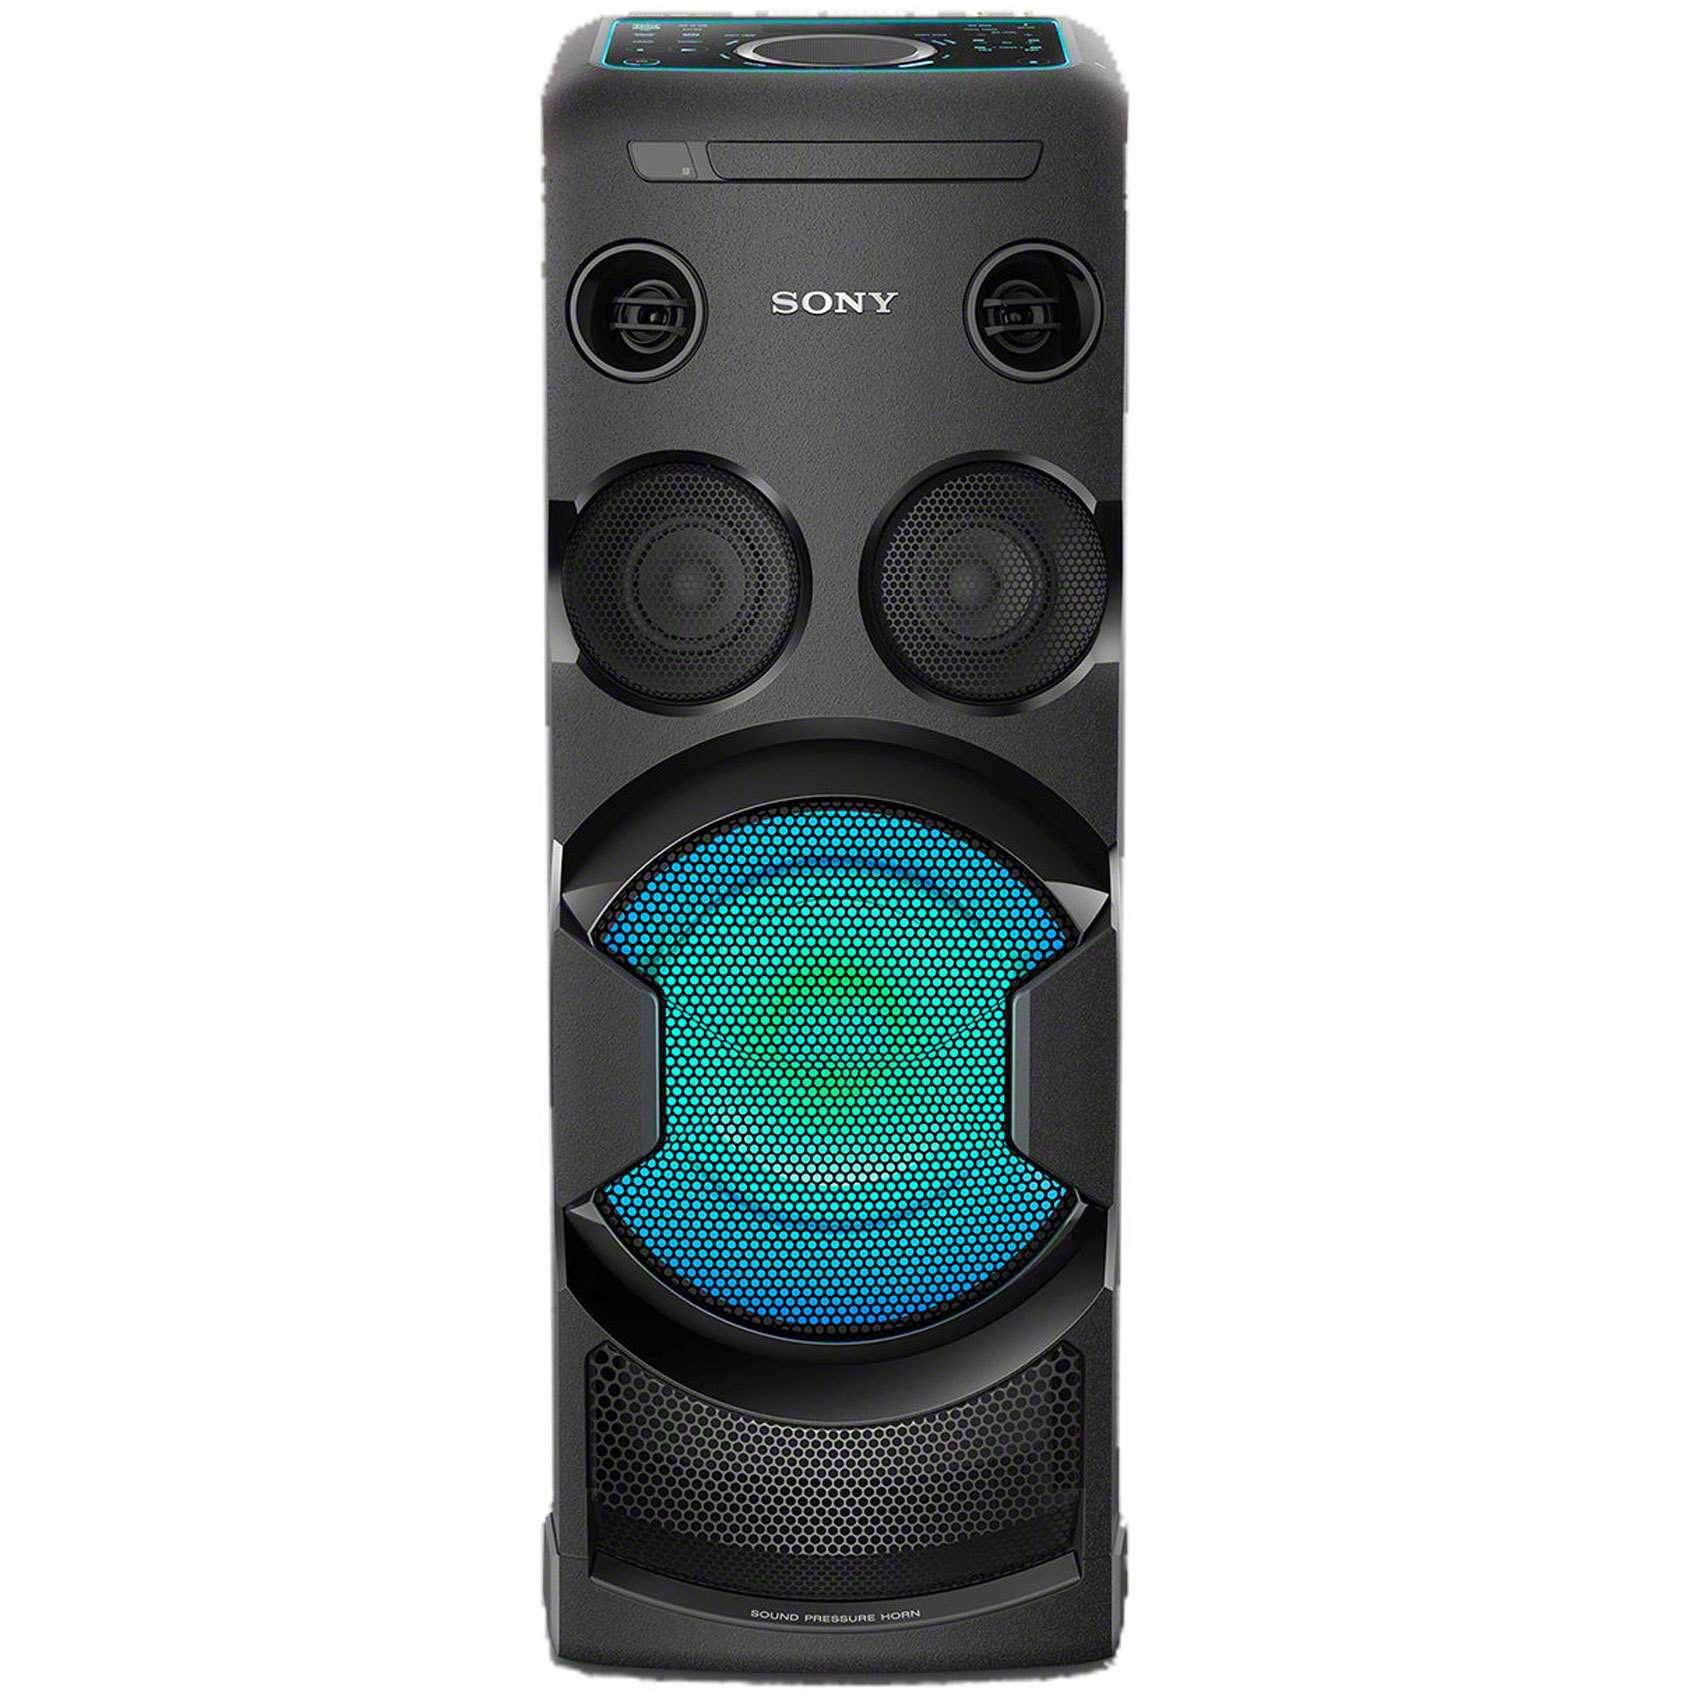 Buy Sony Hifi System MHCV50D Online in UAE - Carrefour UAE